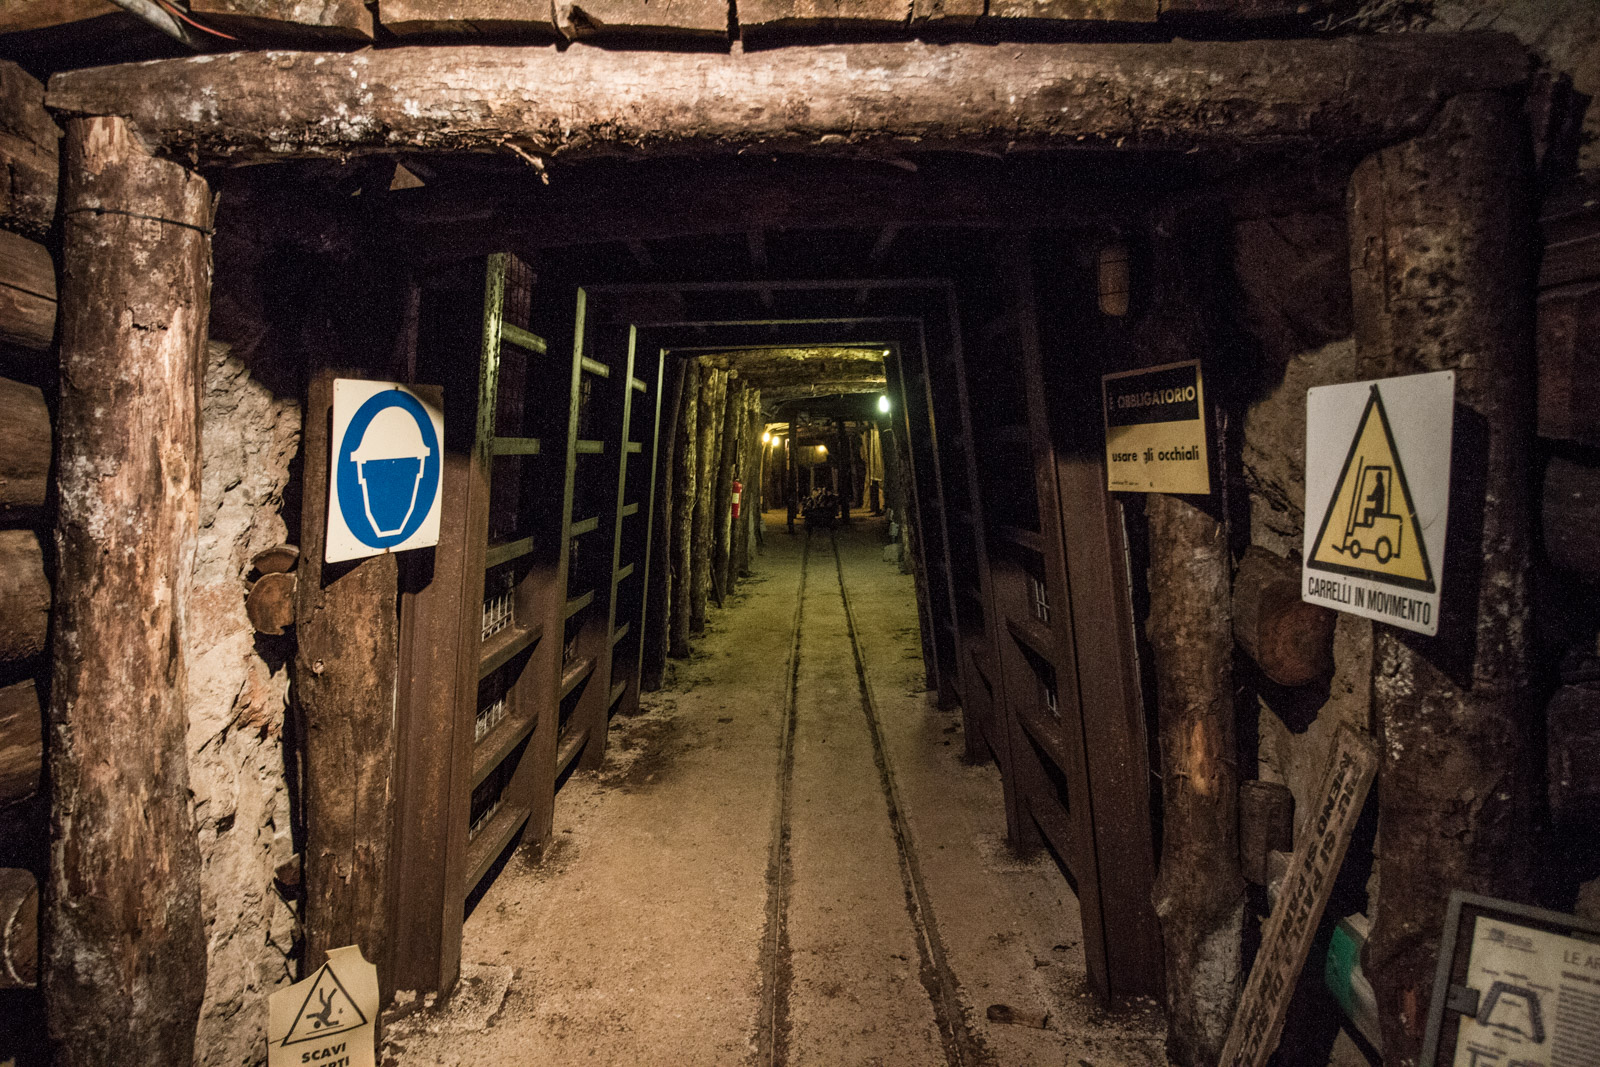 This part of the mine has examples of the different methods used for proping up the walls of the mine.